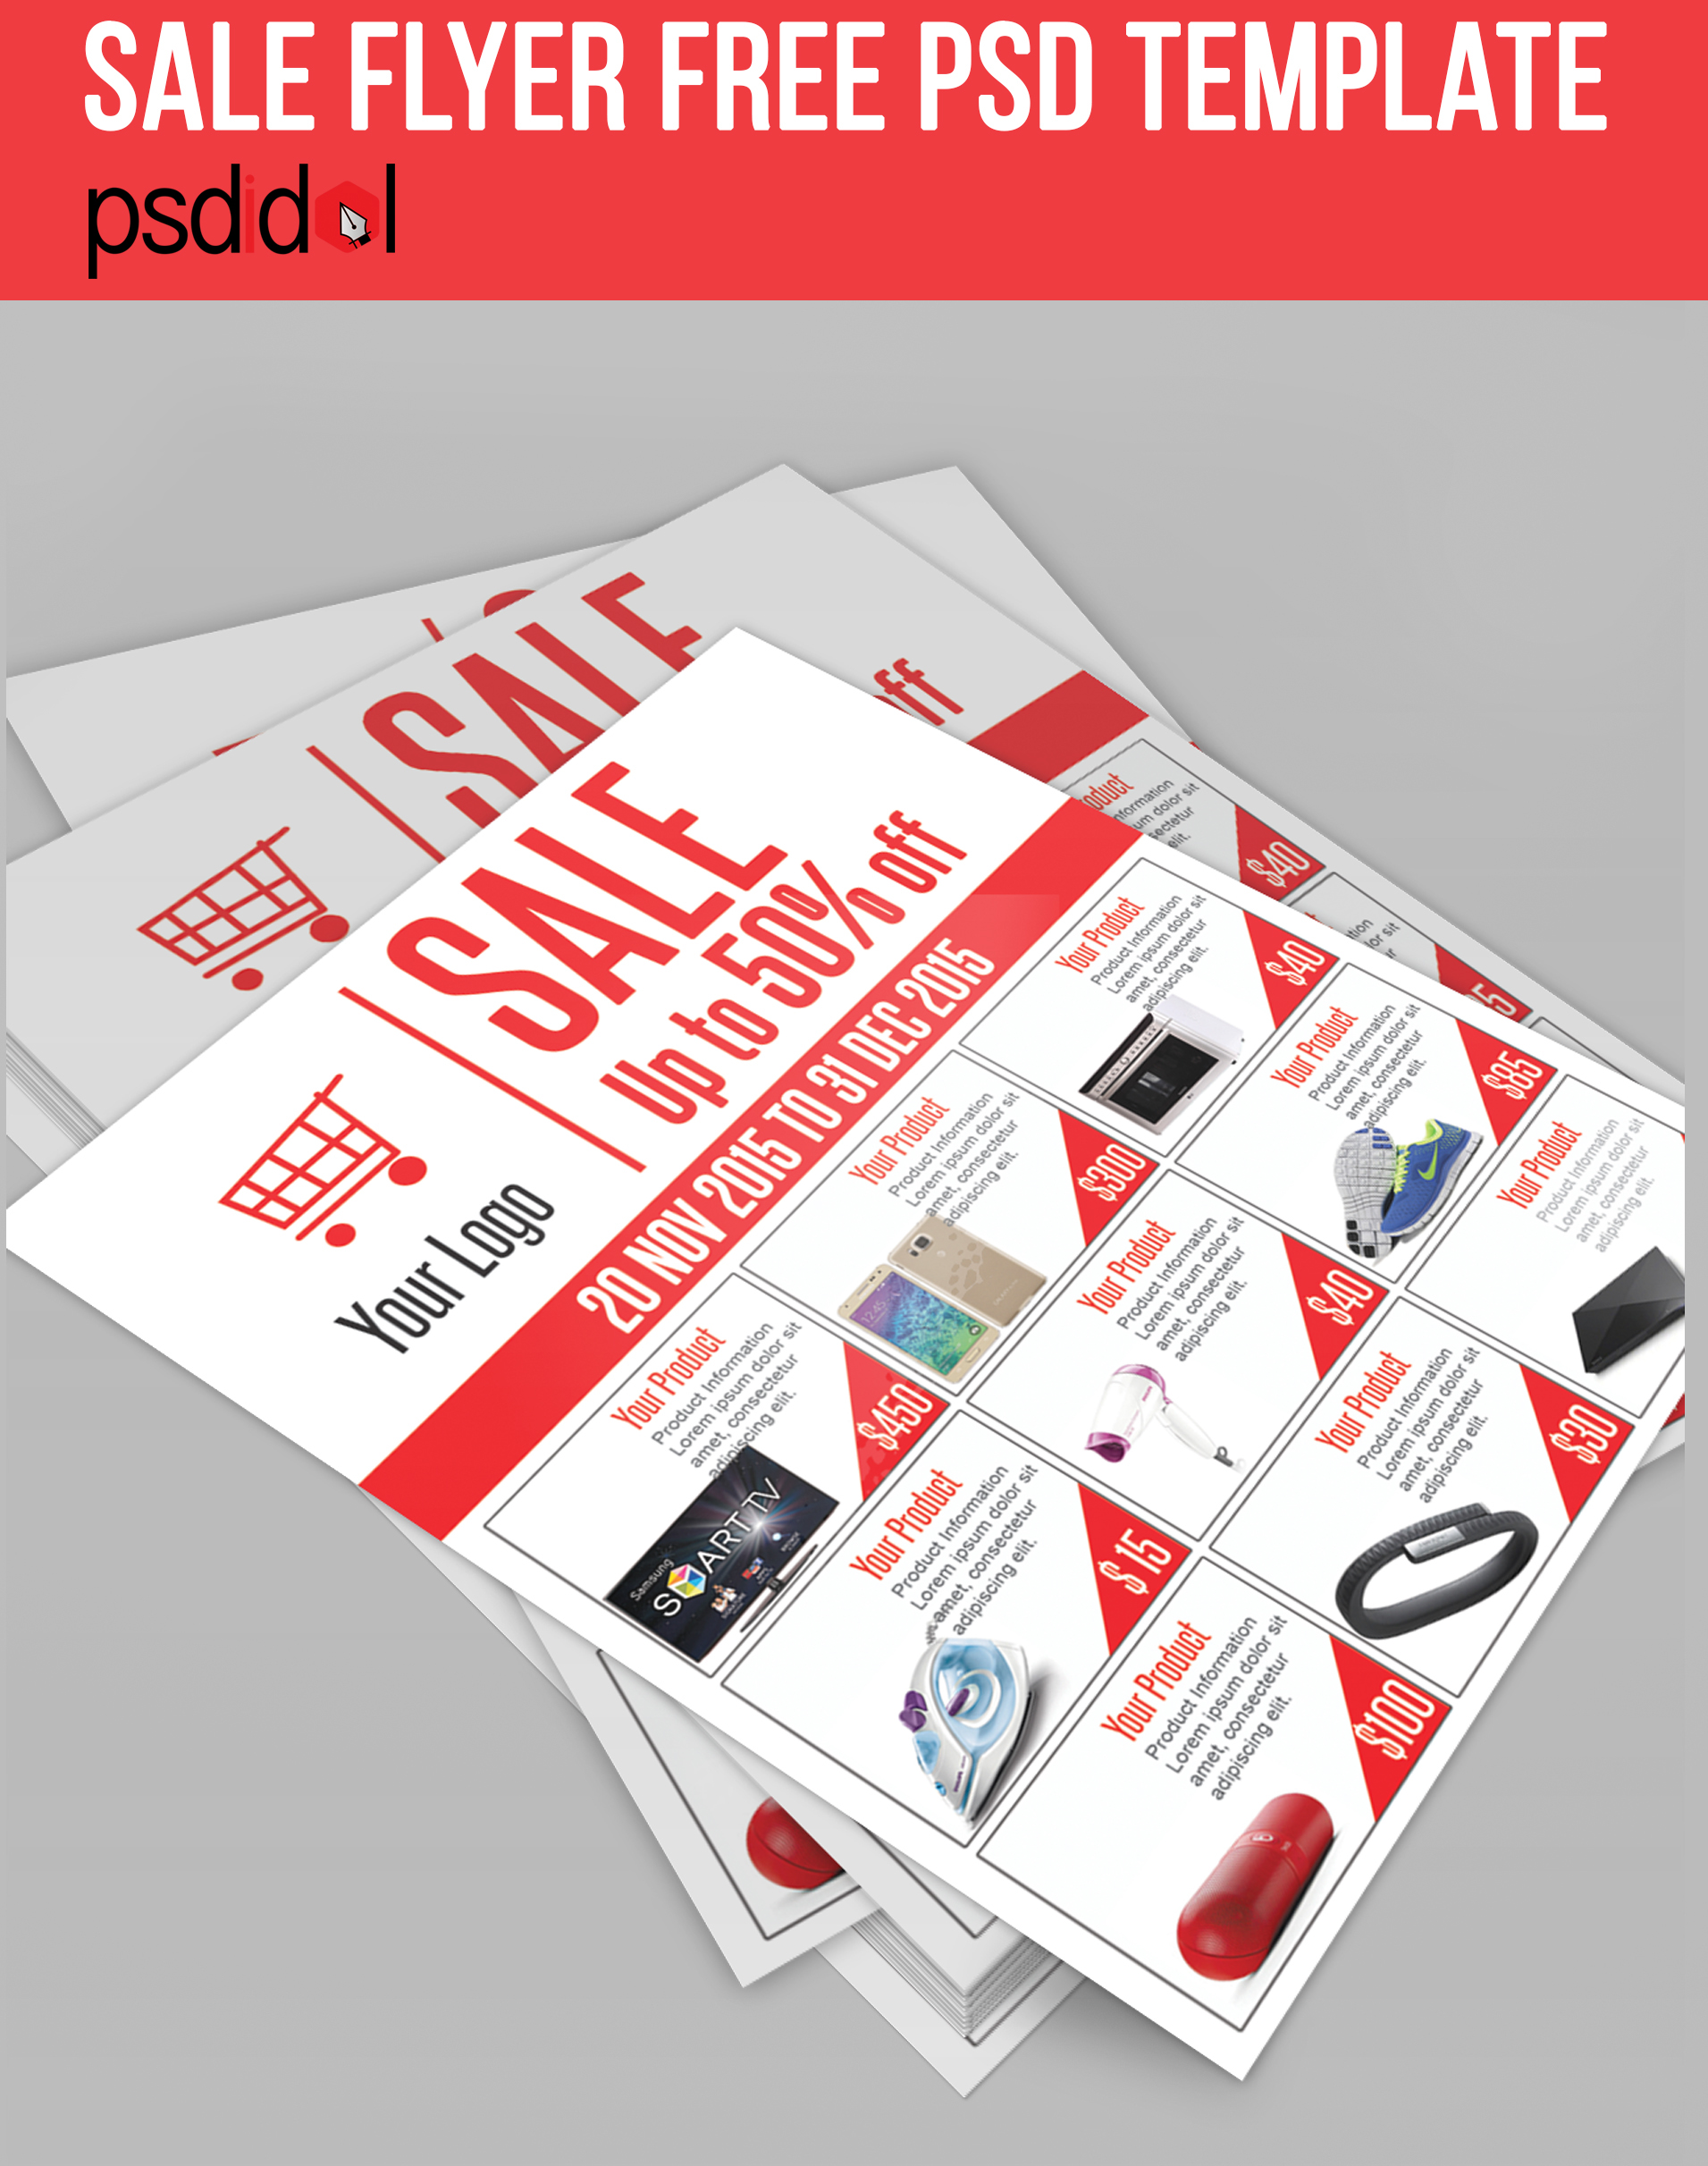 Sale Flyer Free PSD Template Download On Behance Bb27de29050543 Sale Flyer  Free PSD Template Download Car For Sale Sign Template Free  Car Sale Sign Template